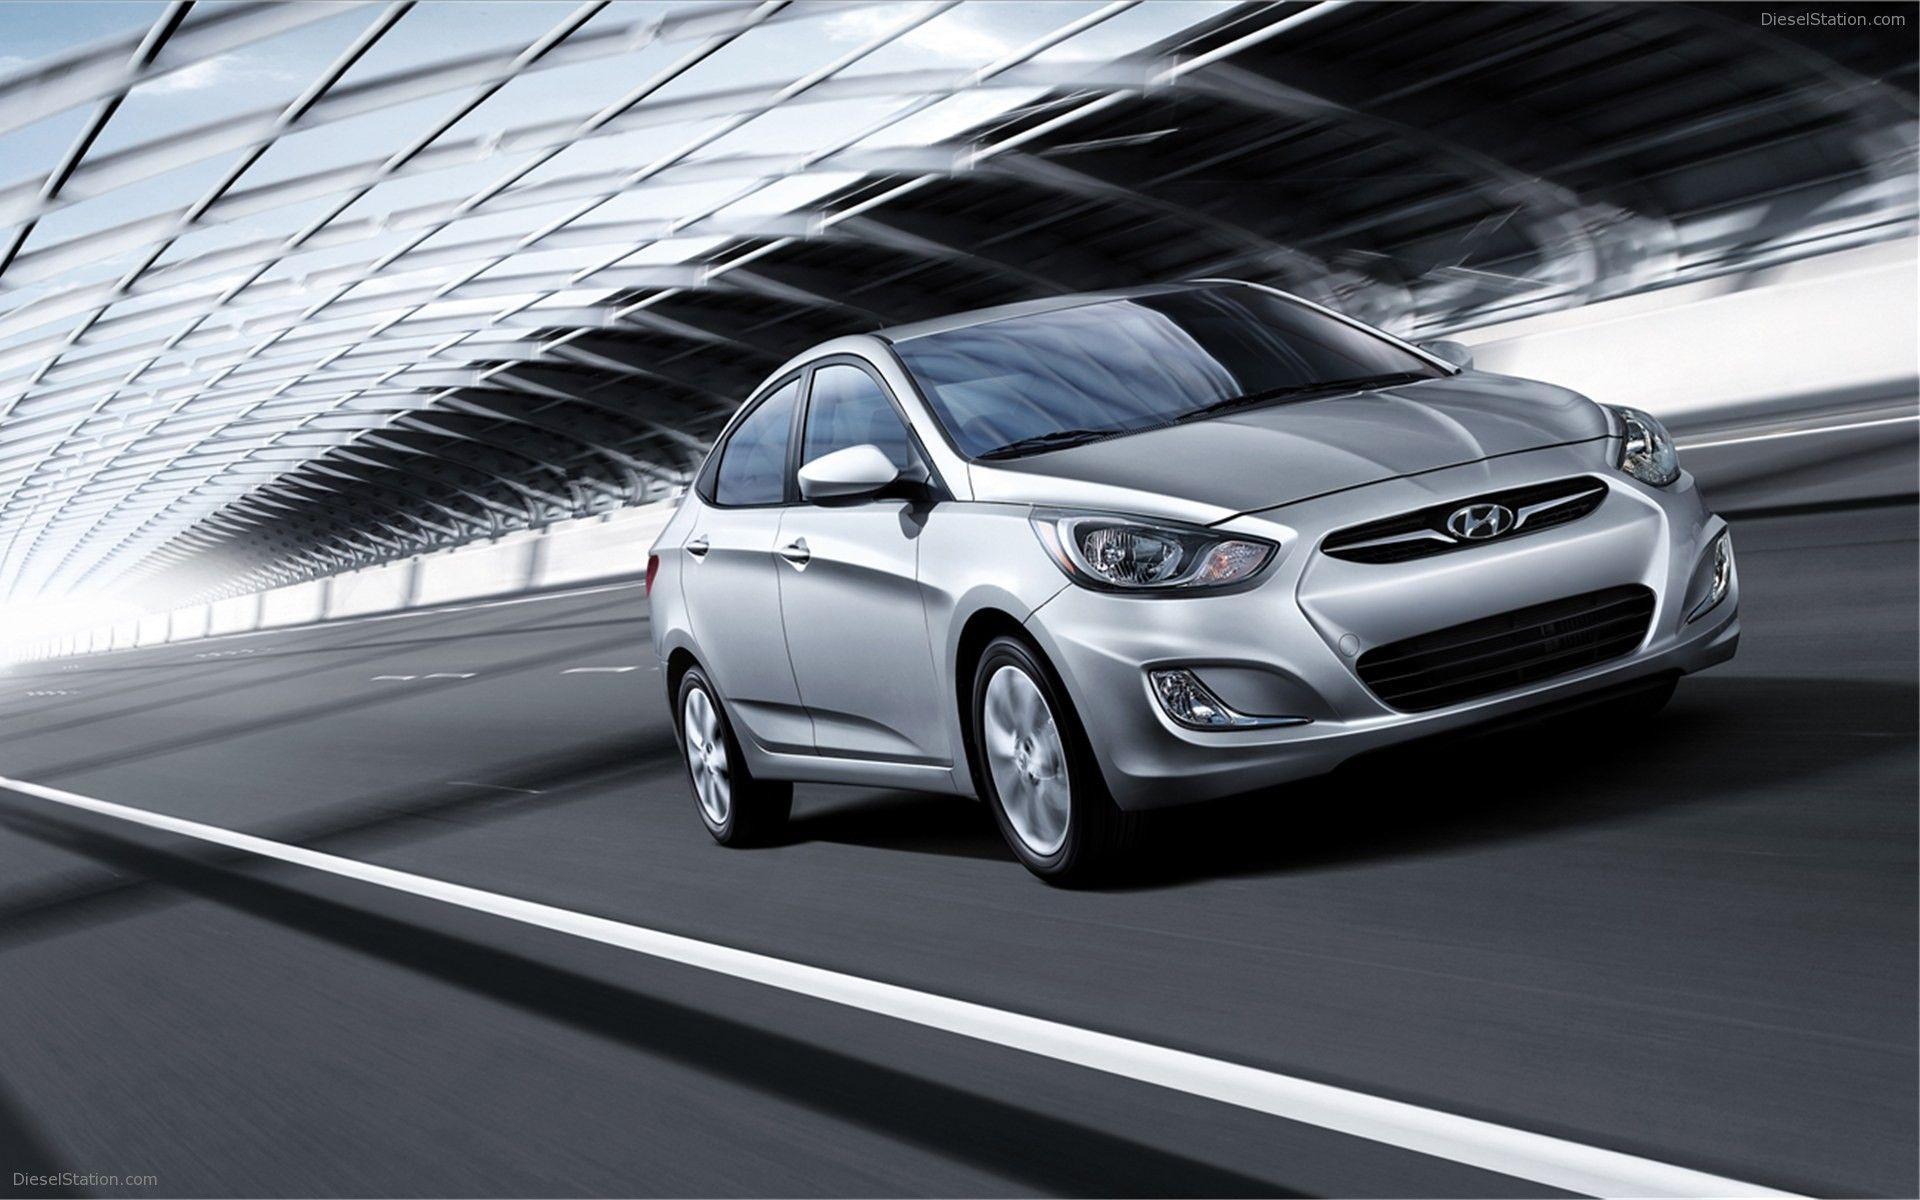 Hyundai Accent Wallpapers HD Photos, Wallpapers and other Image